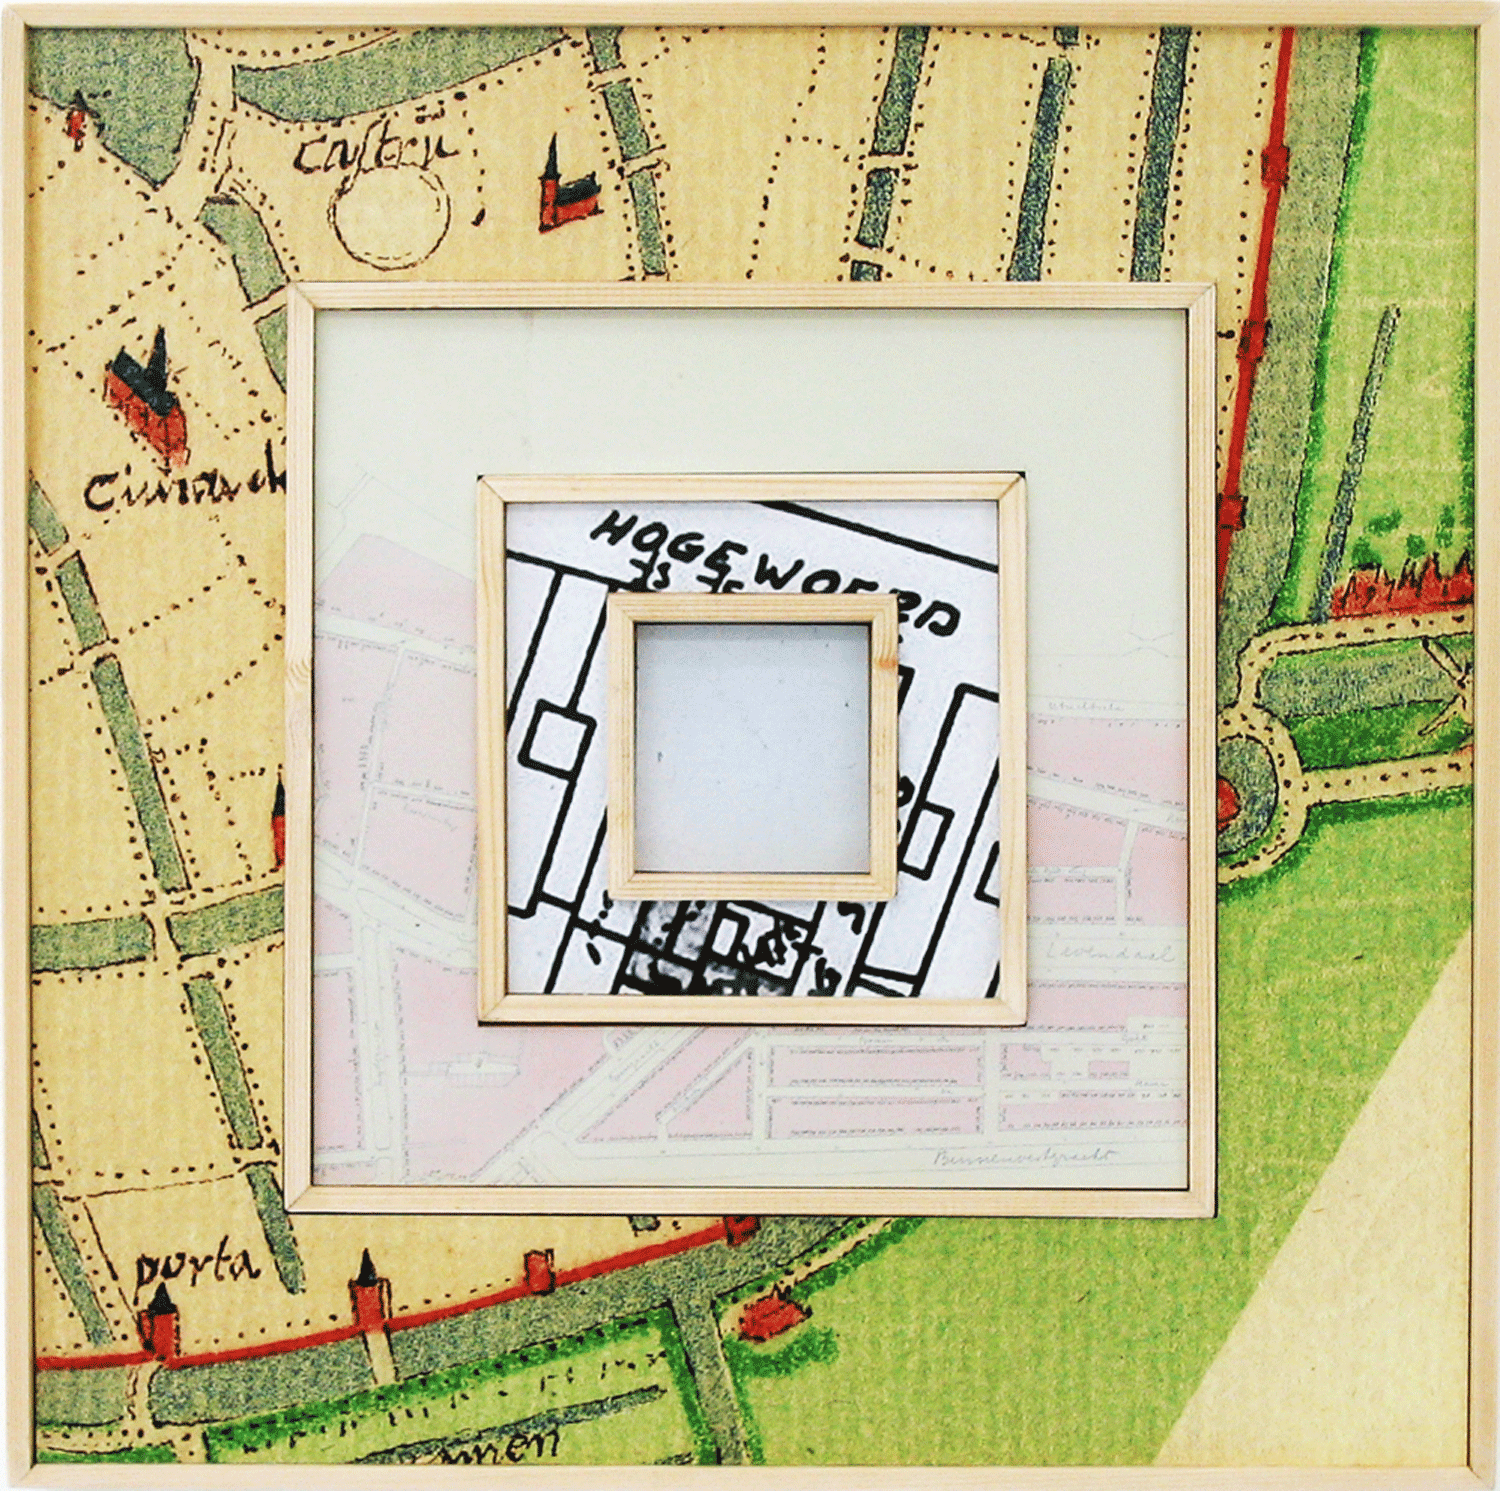 Hogewoerd 77, Leiden: zooming in on time and space by way of maps and plans of this address throughout the ages. Front of the work.